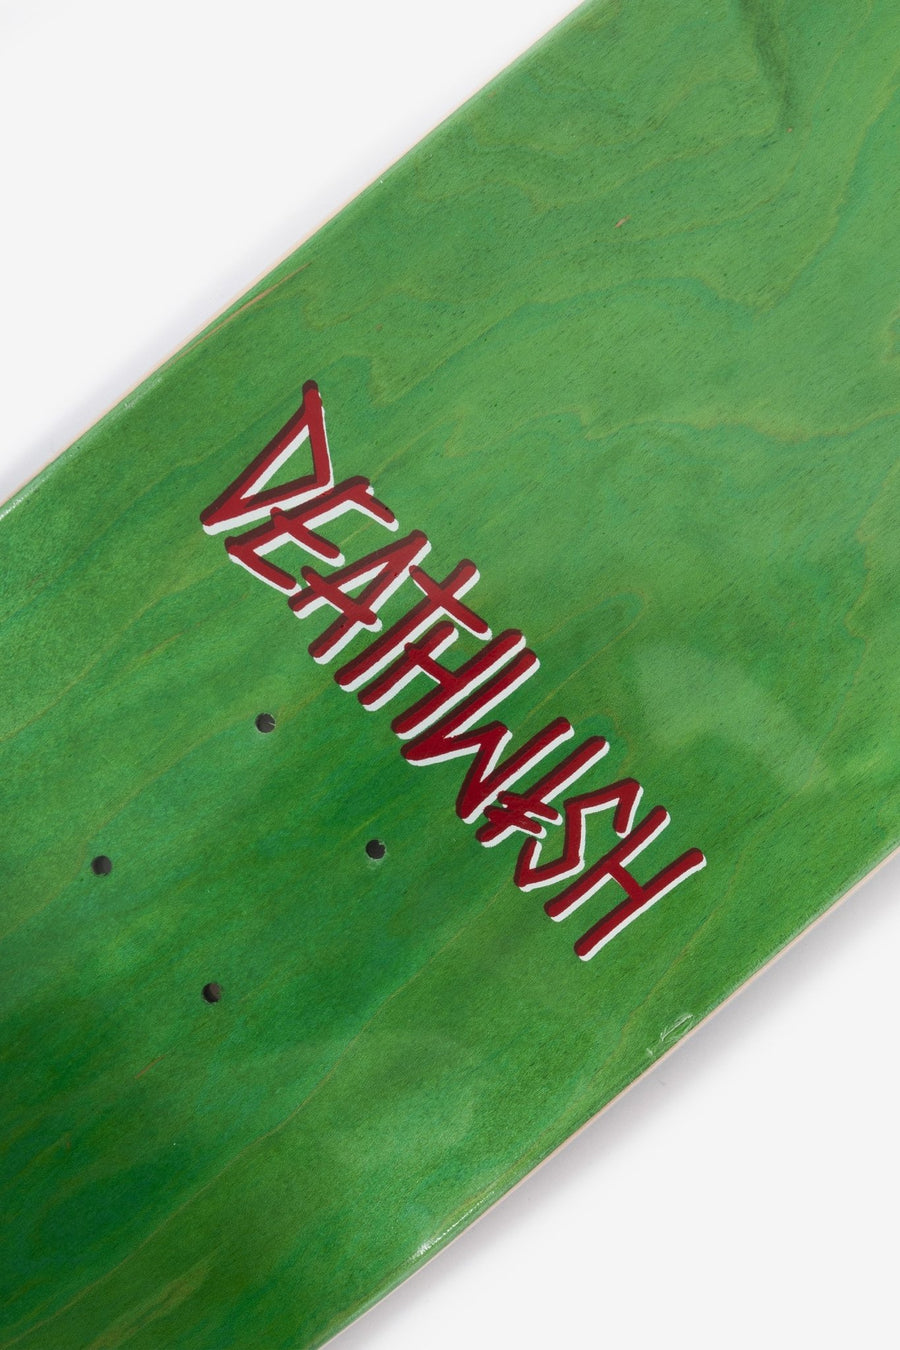 Board DeathWish Random Veneers - WASTED PARIS